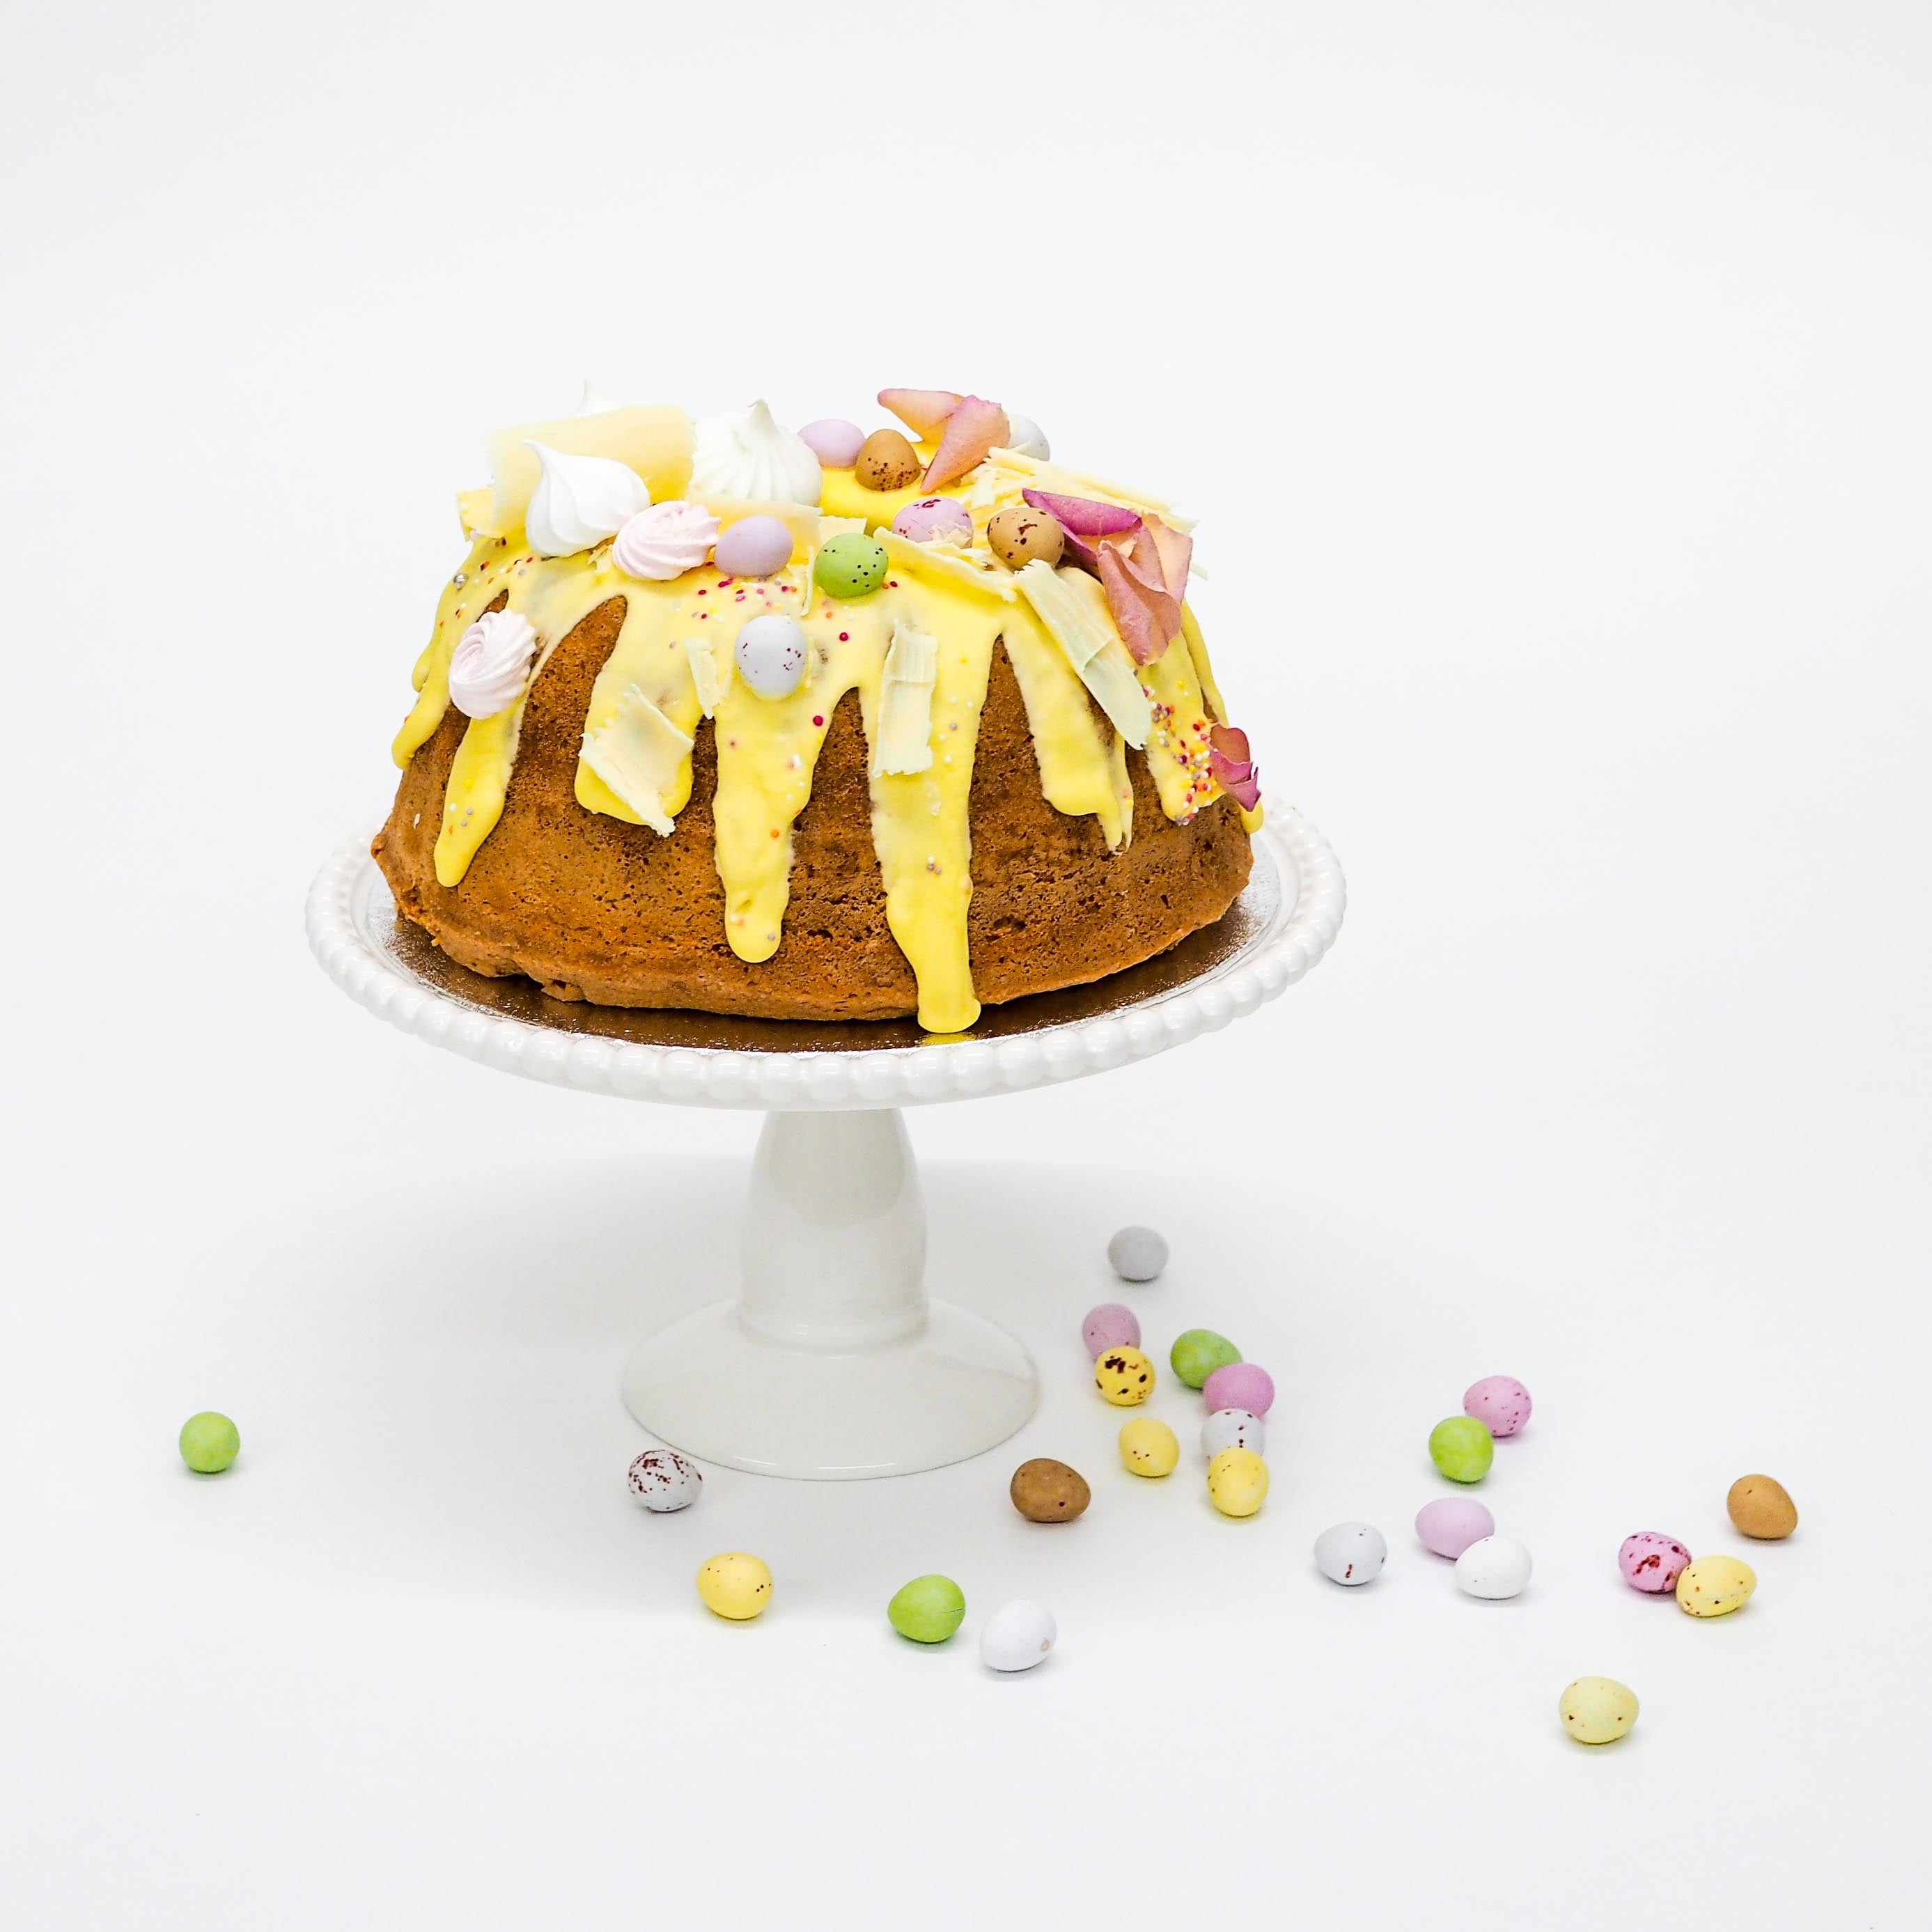 Lemon Drizzle Easter Bundt Cake Confection By Rosalind Miller